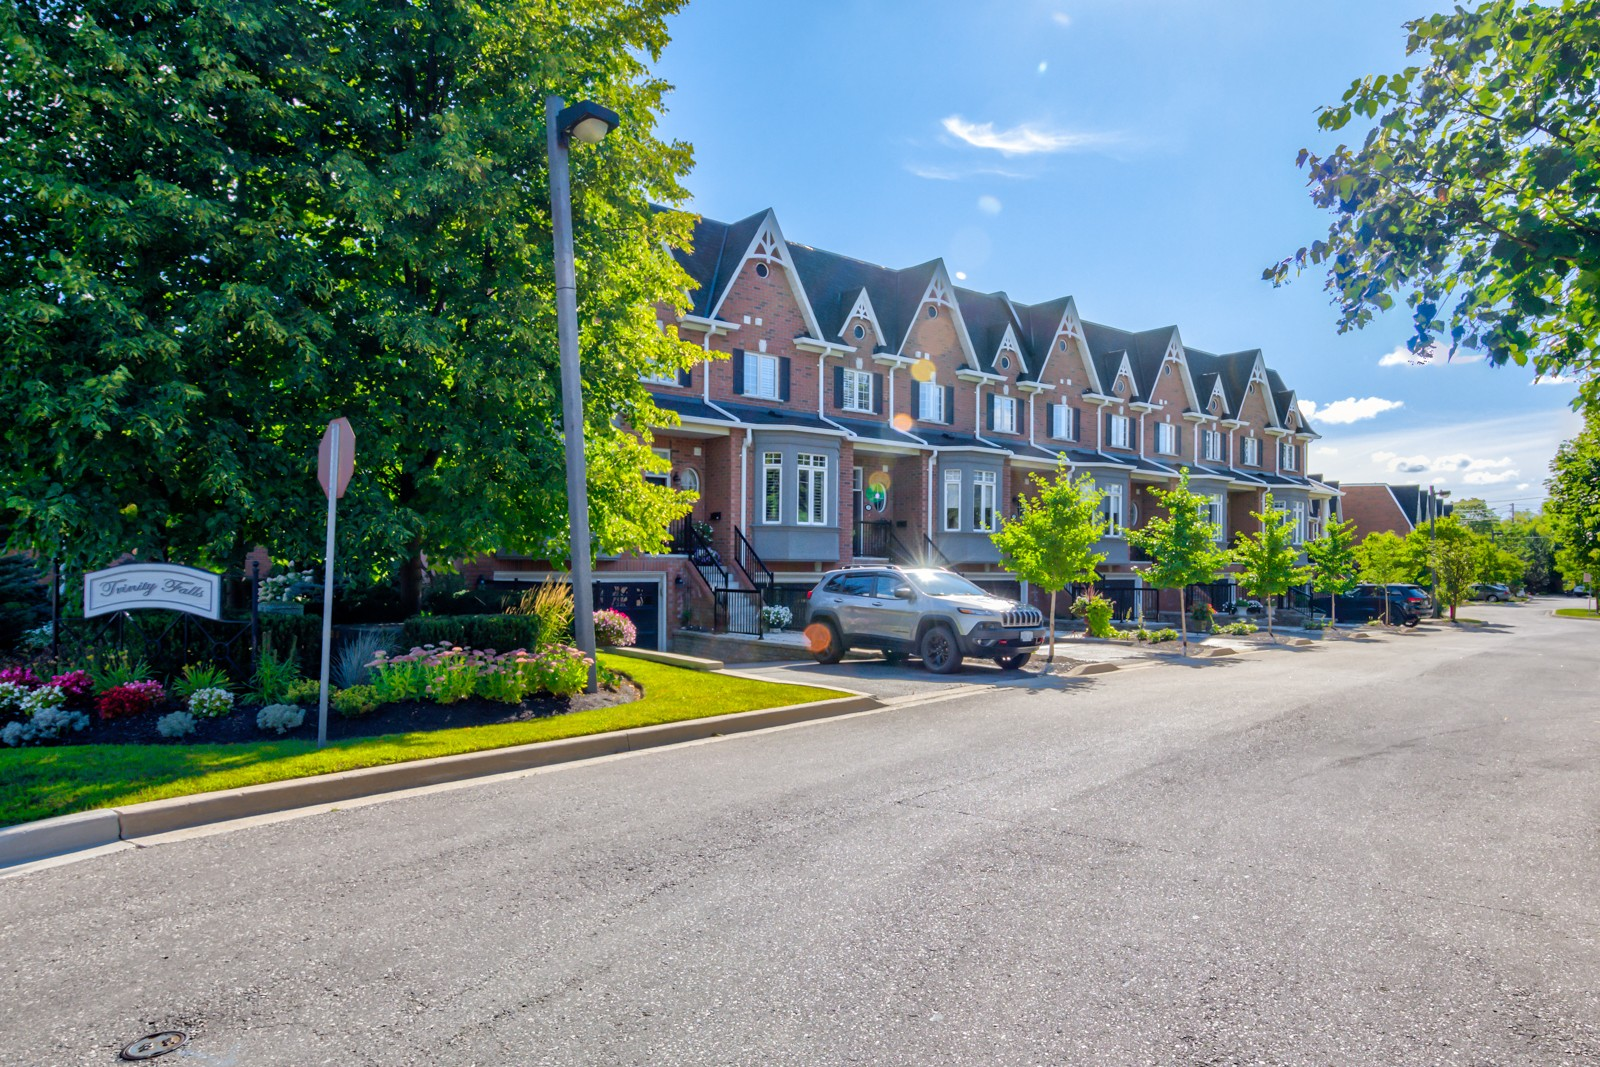 29 Ellen Street Townhomes at 85 Church St, Mississauga 0